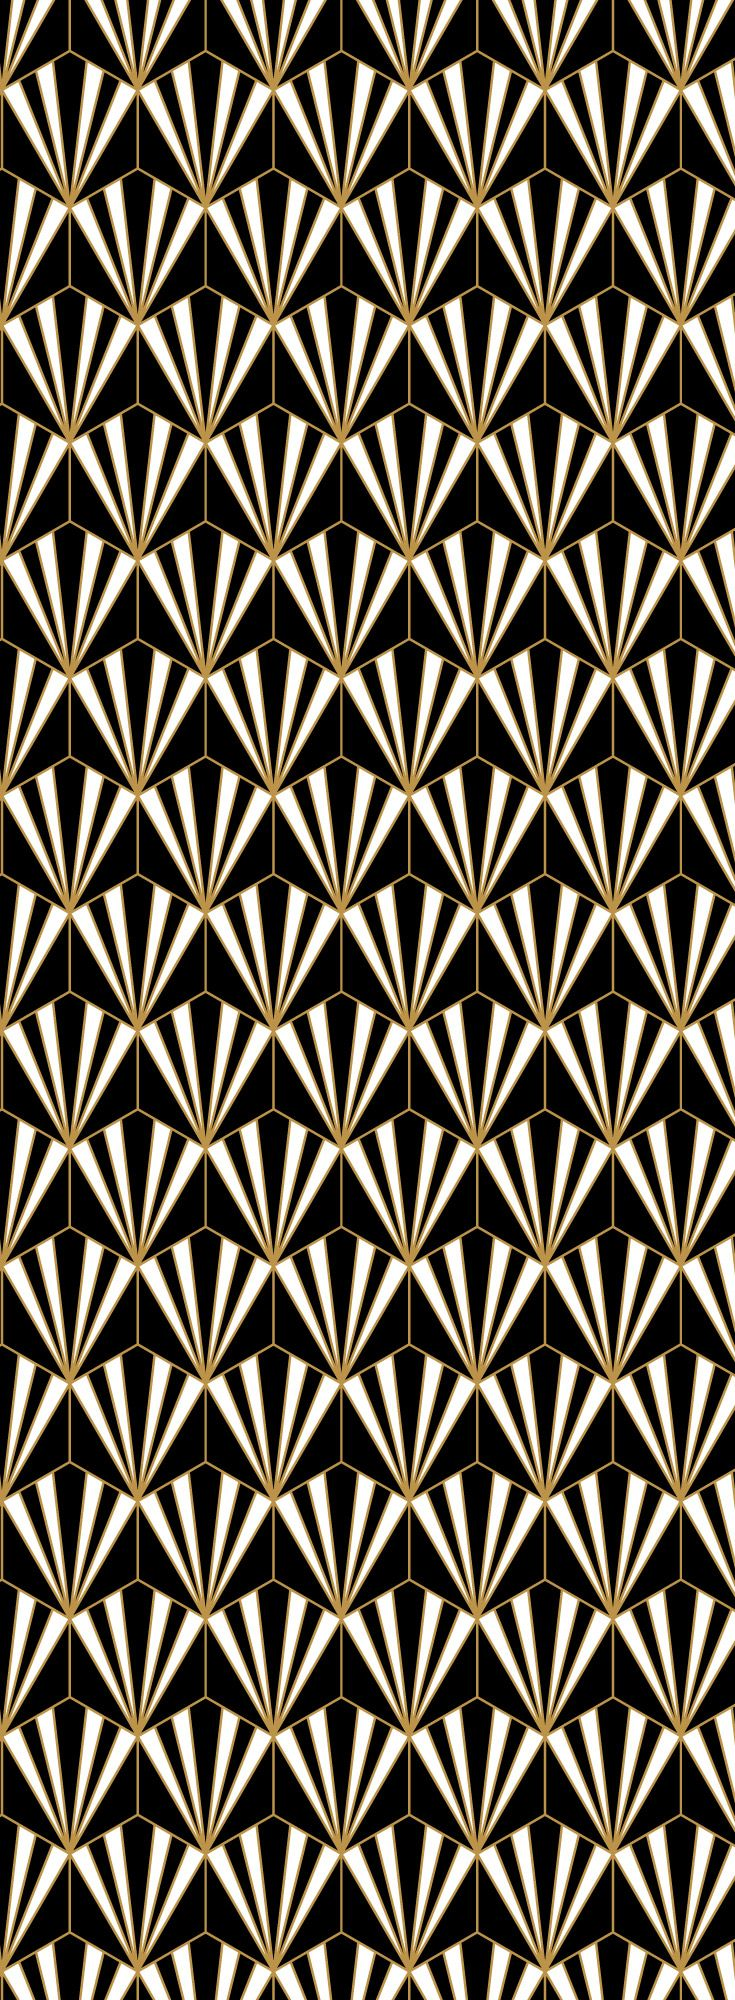 Luxurious Black White And Gold Art Deco Metallic Wallpaper Pattern Gold Art Deco Art Deco Wallpaper Metallic Wallpaper